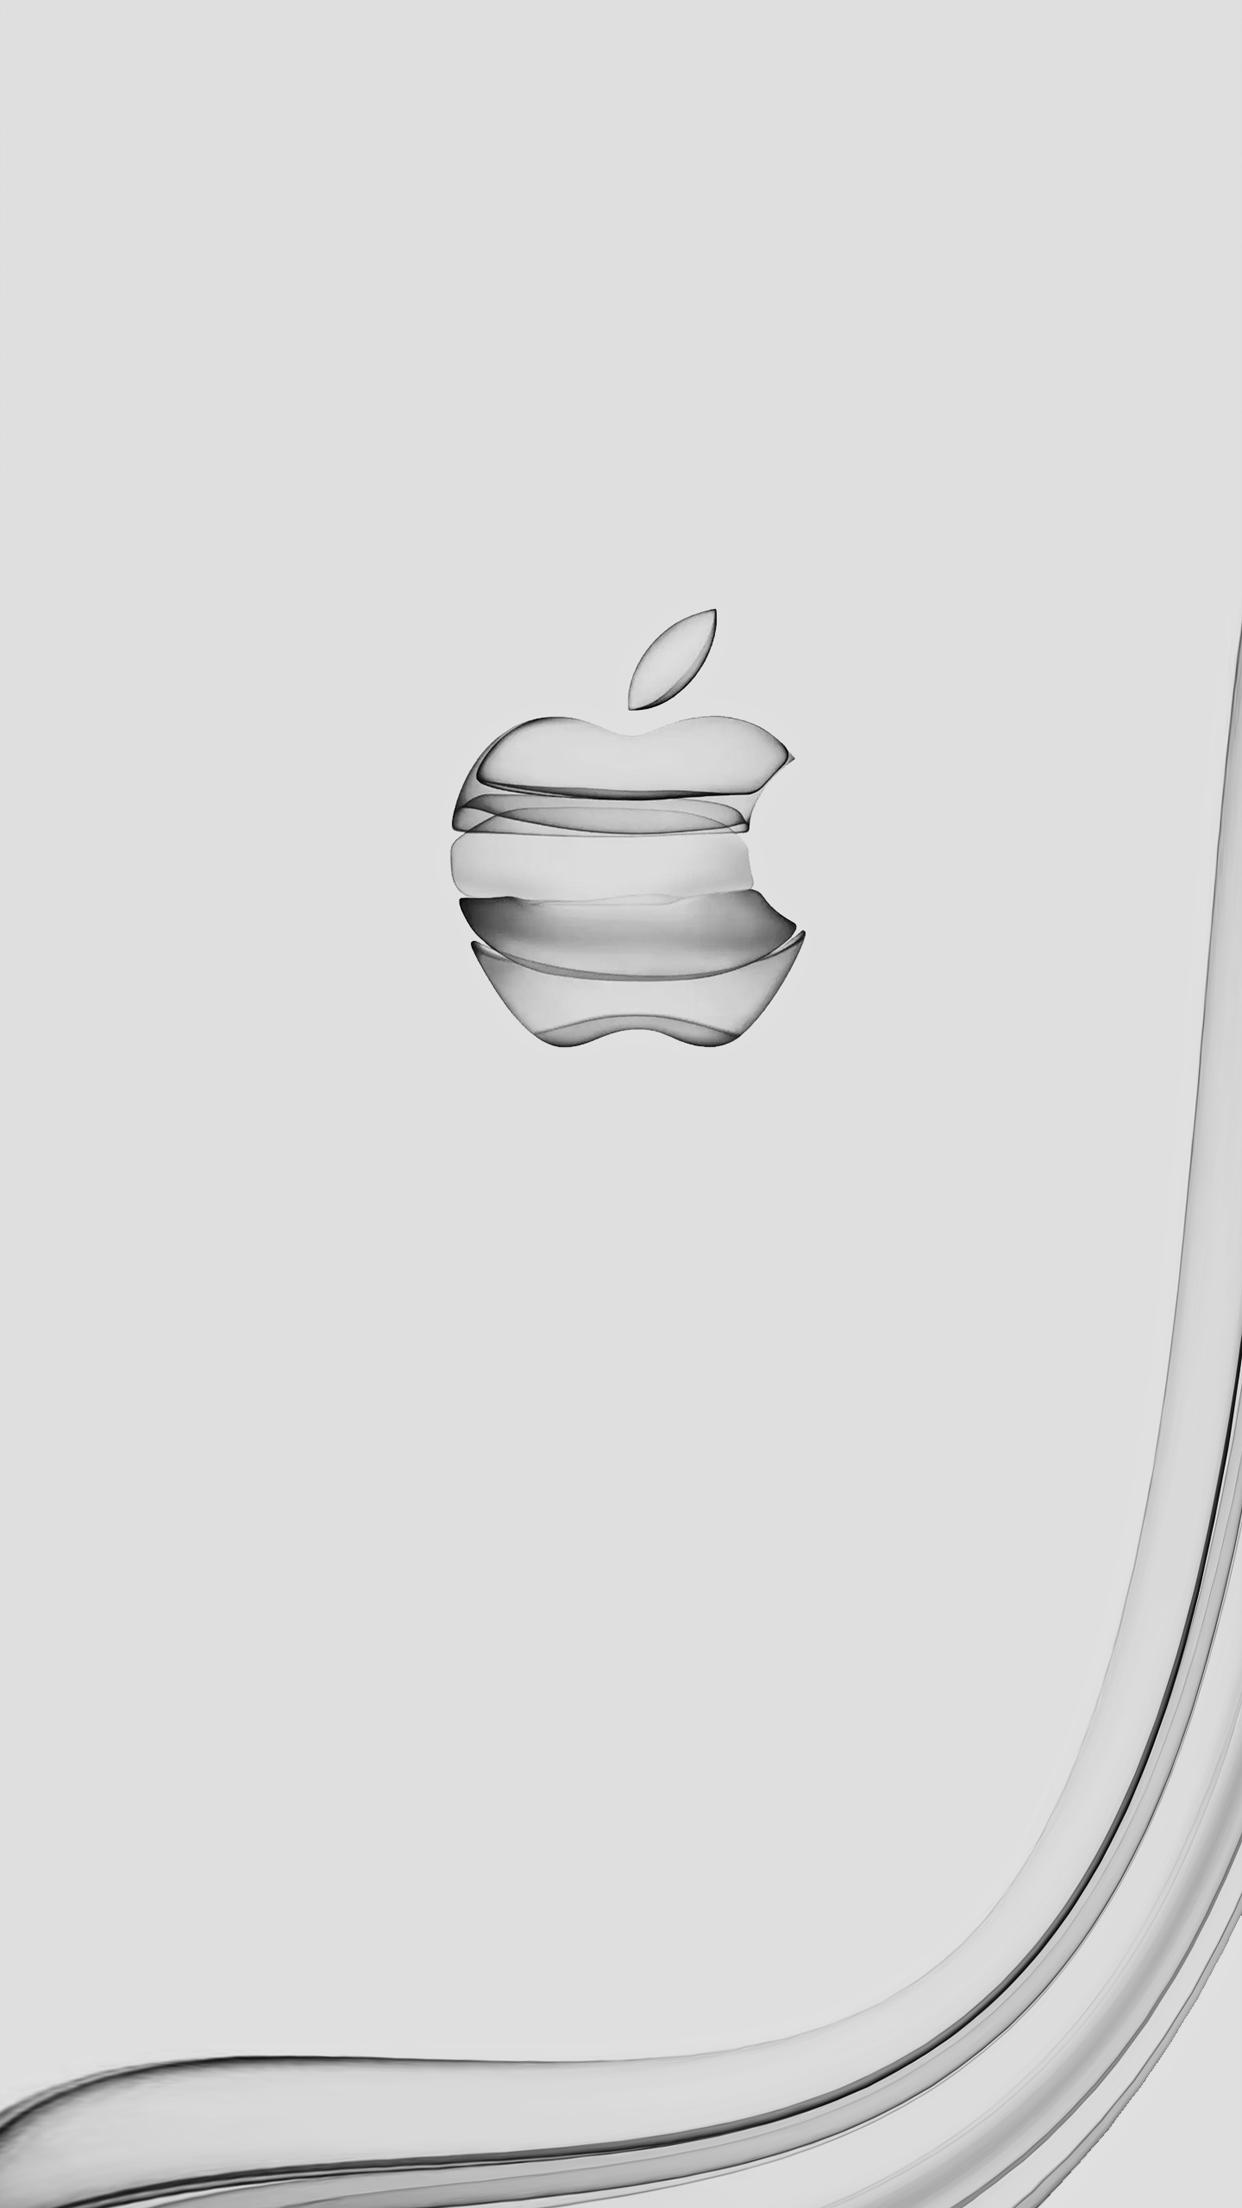 Iphone 11 White Wallpapers Wallpaper Cave